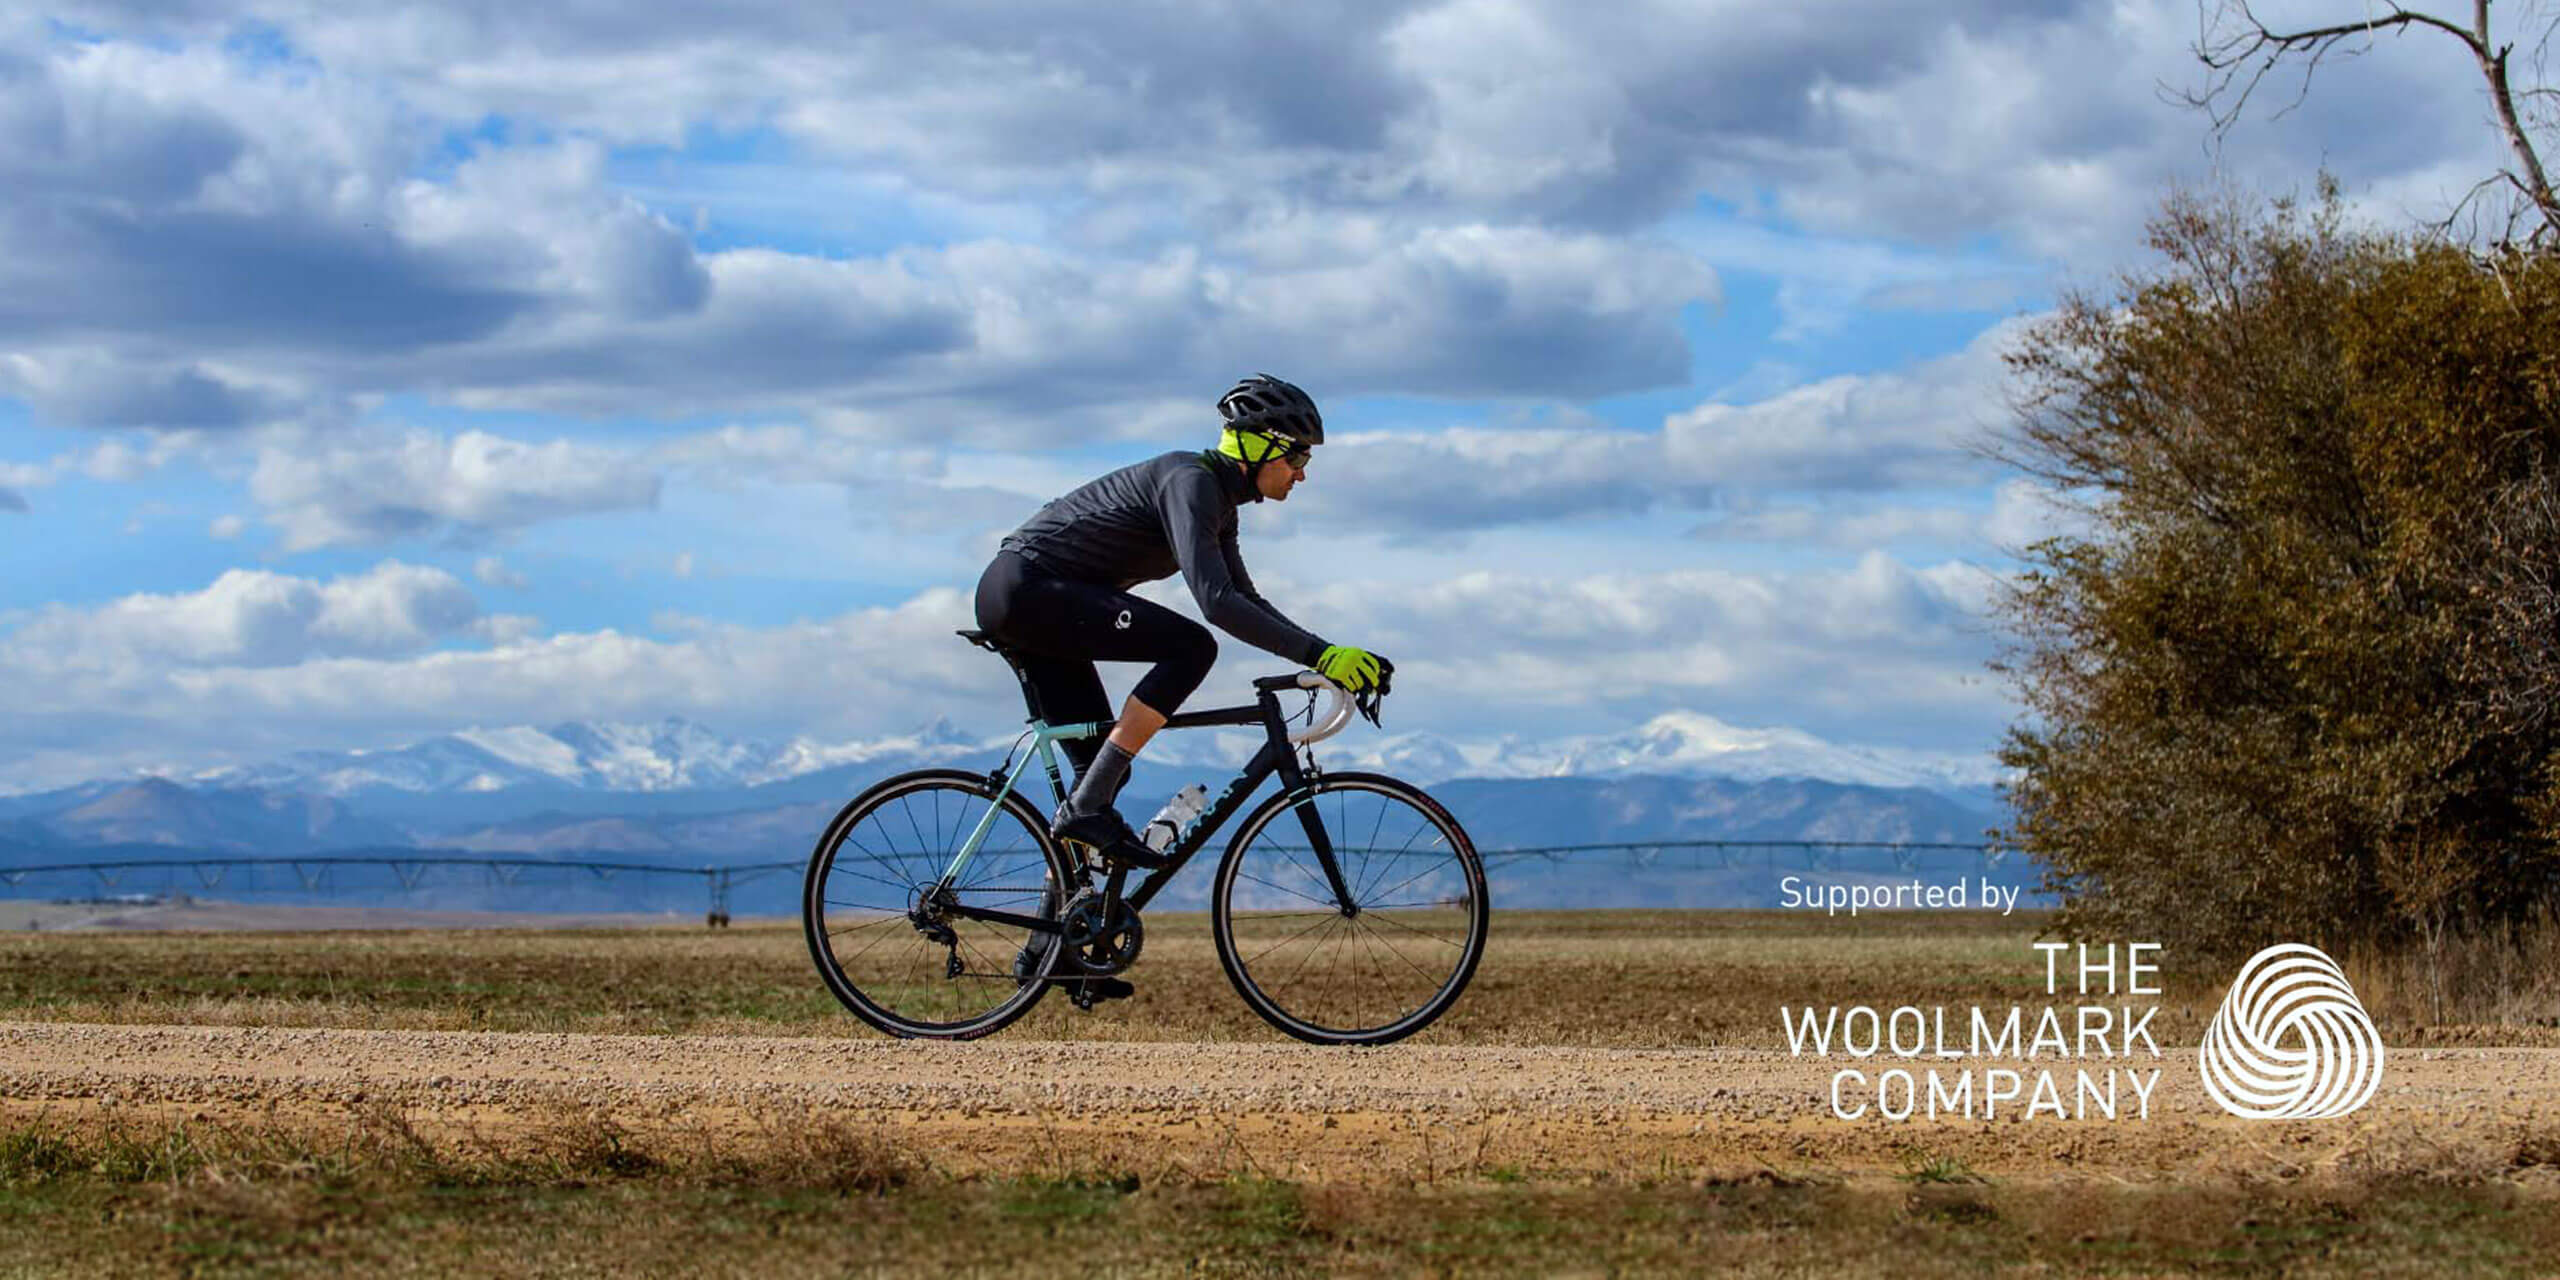 Merino - Good for your ride, and good for the earth